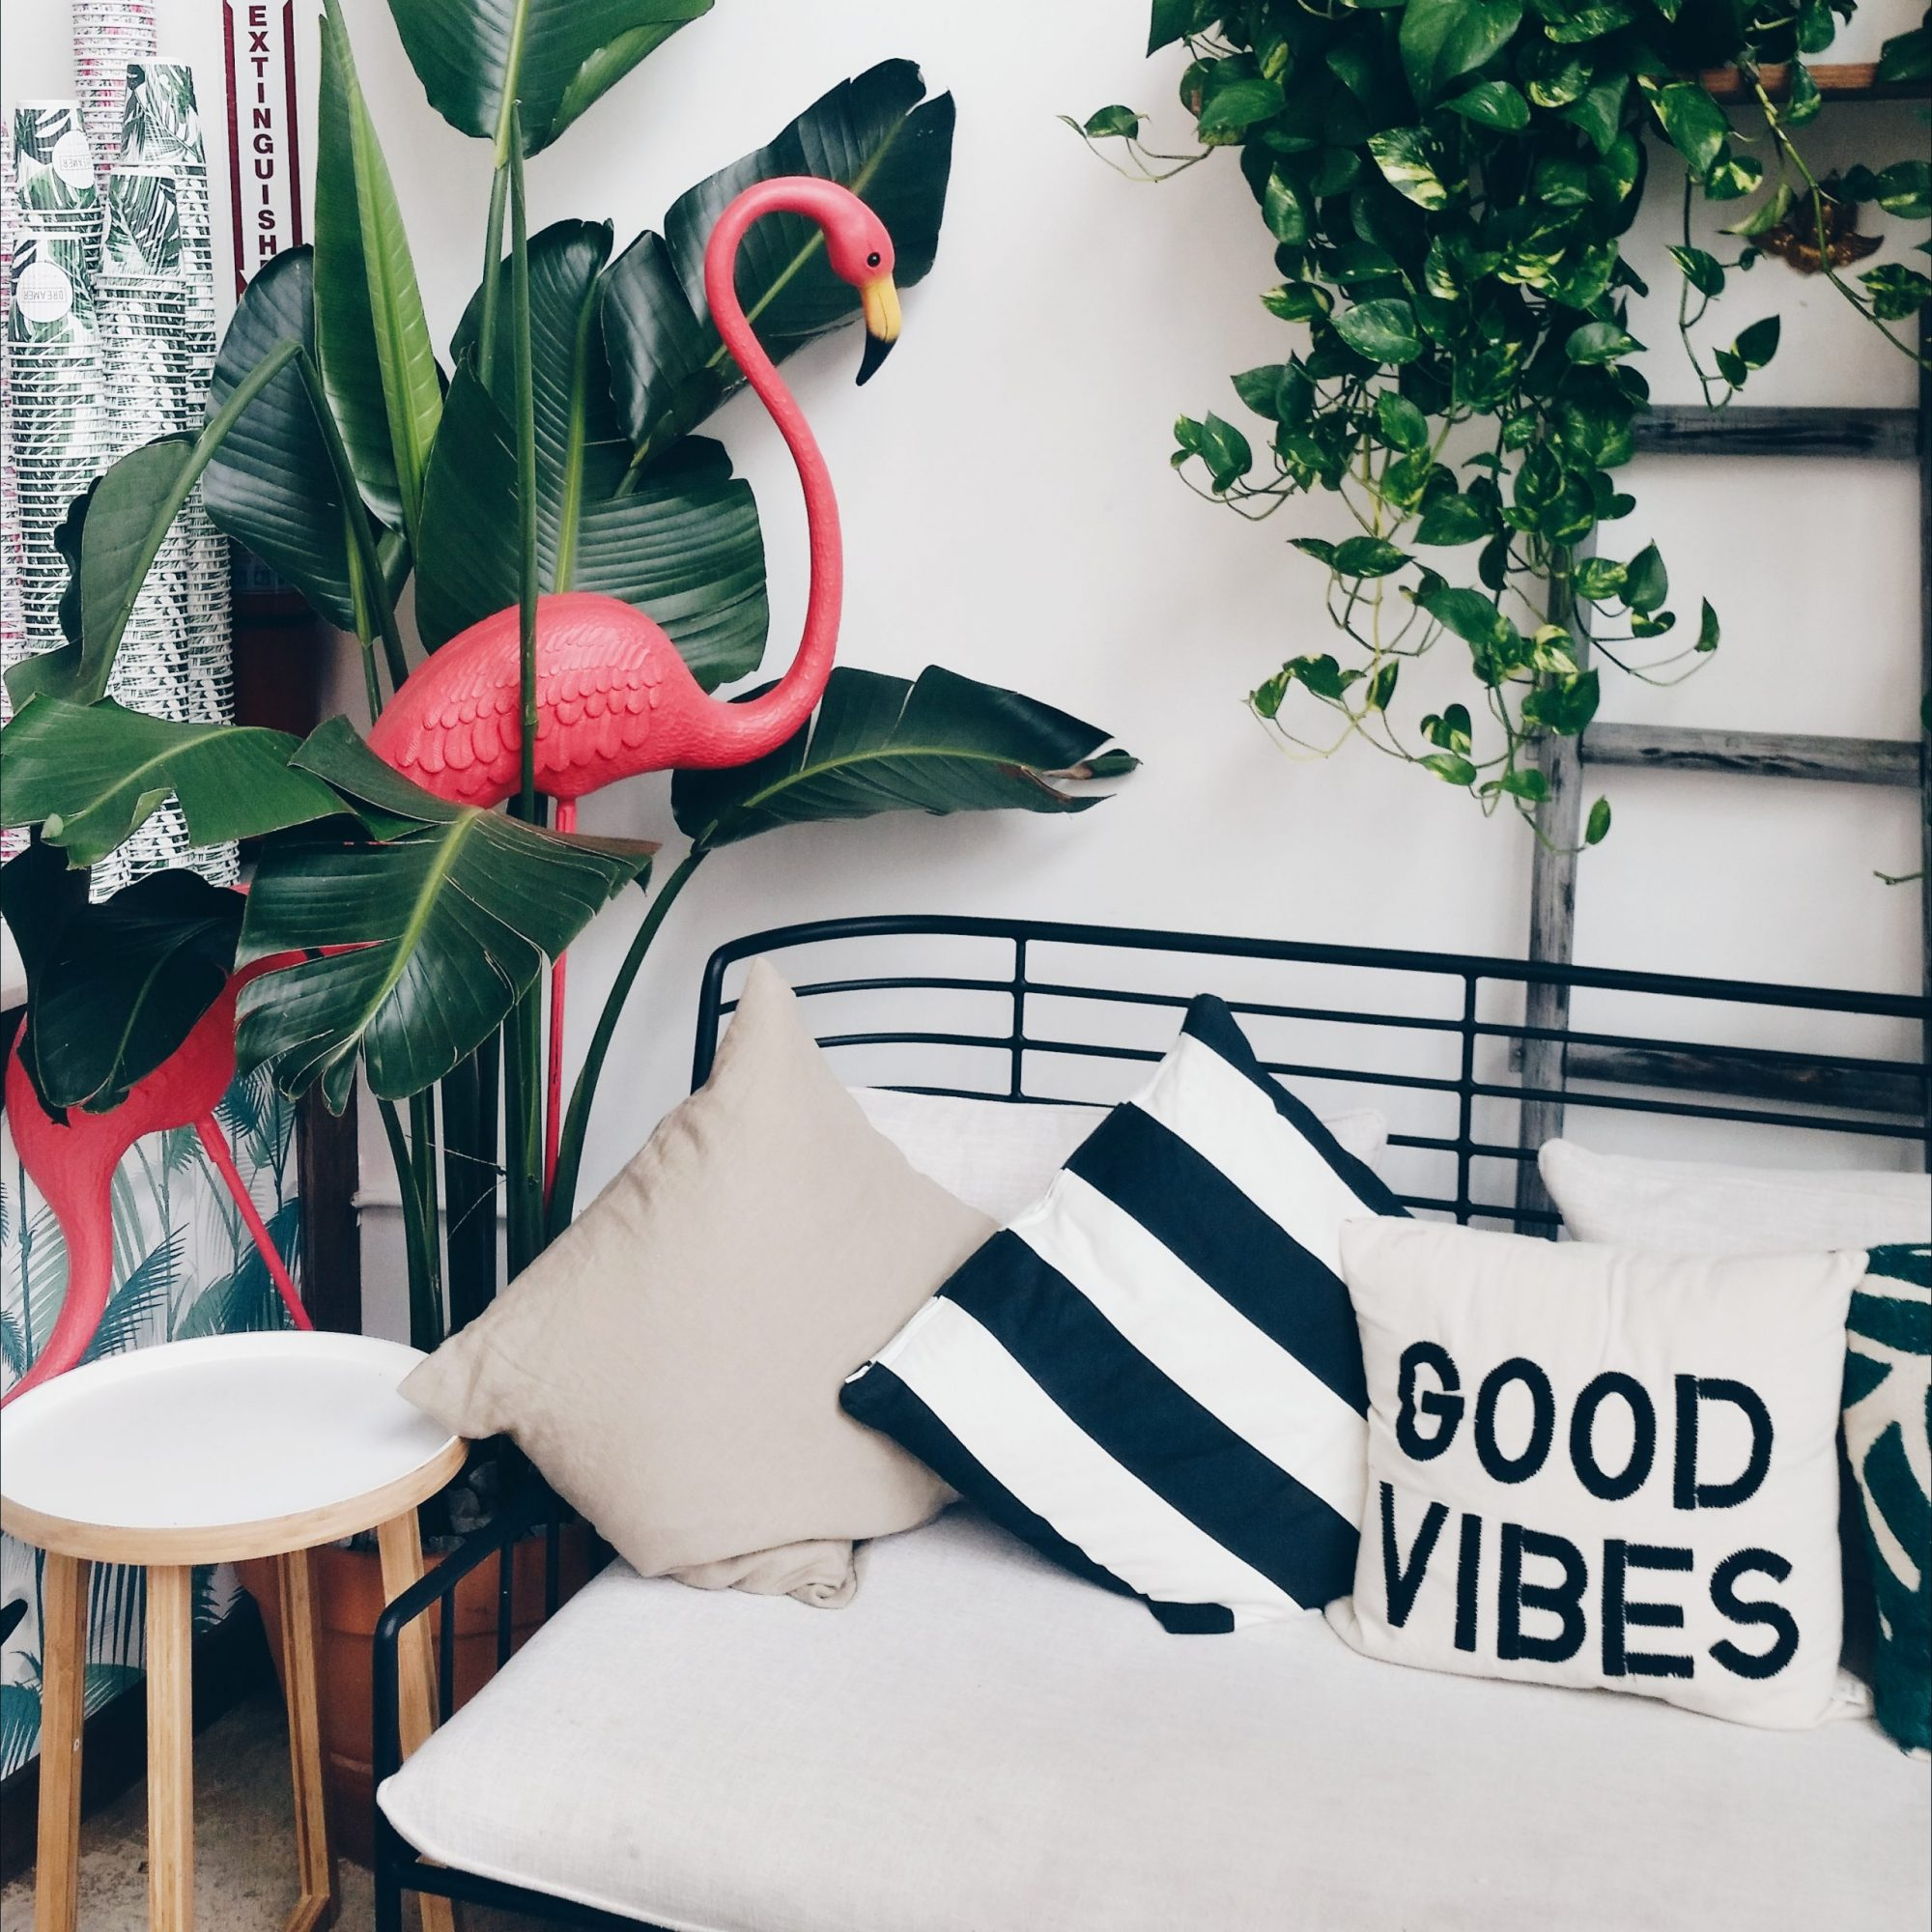 Miami's most Instagrammable place